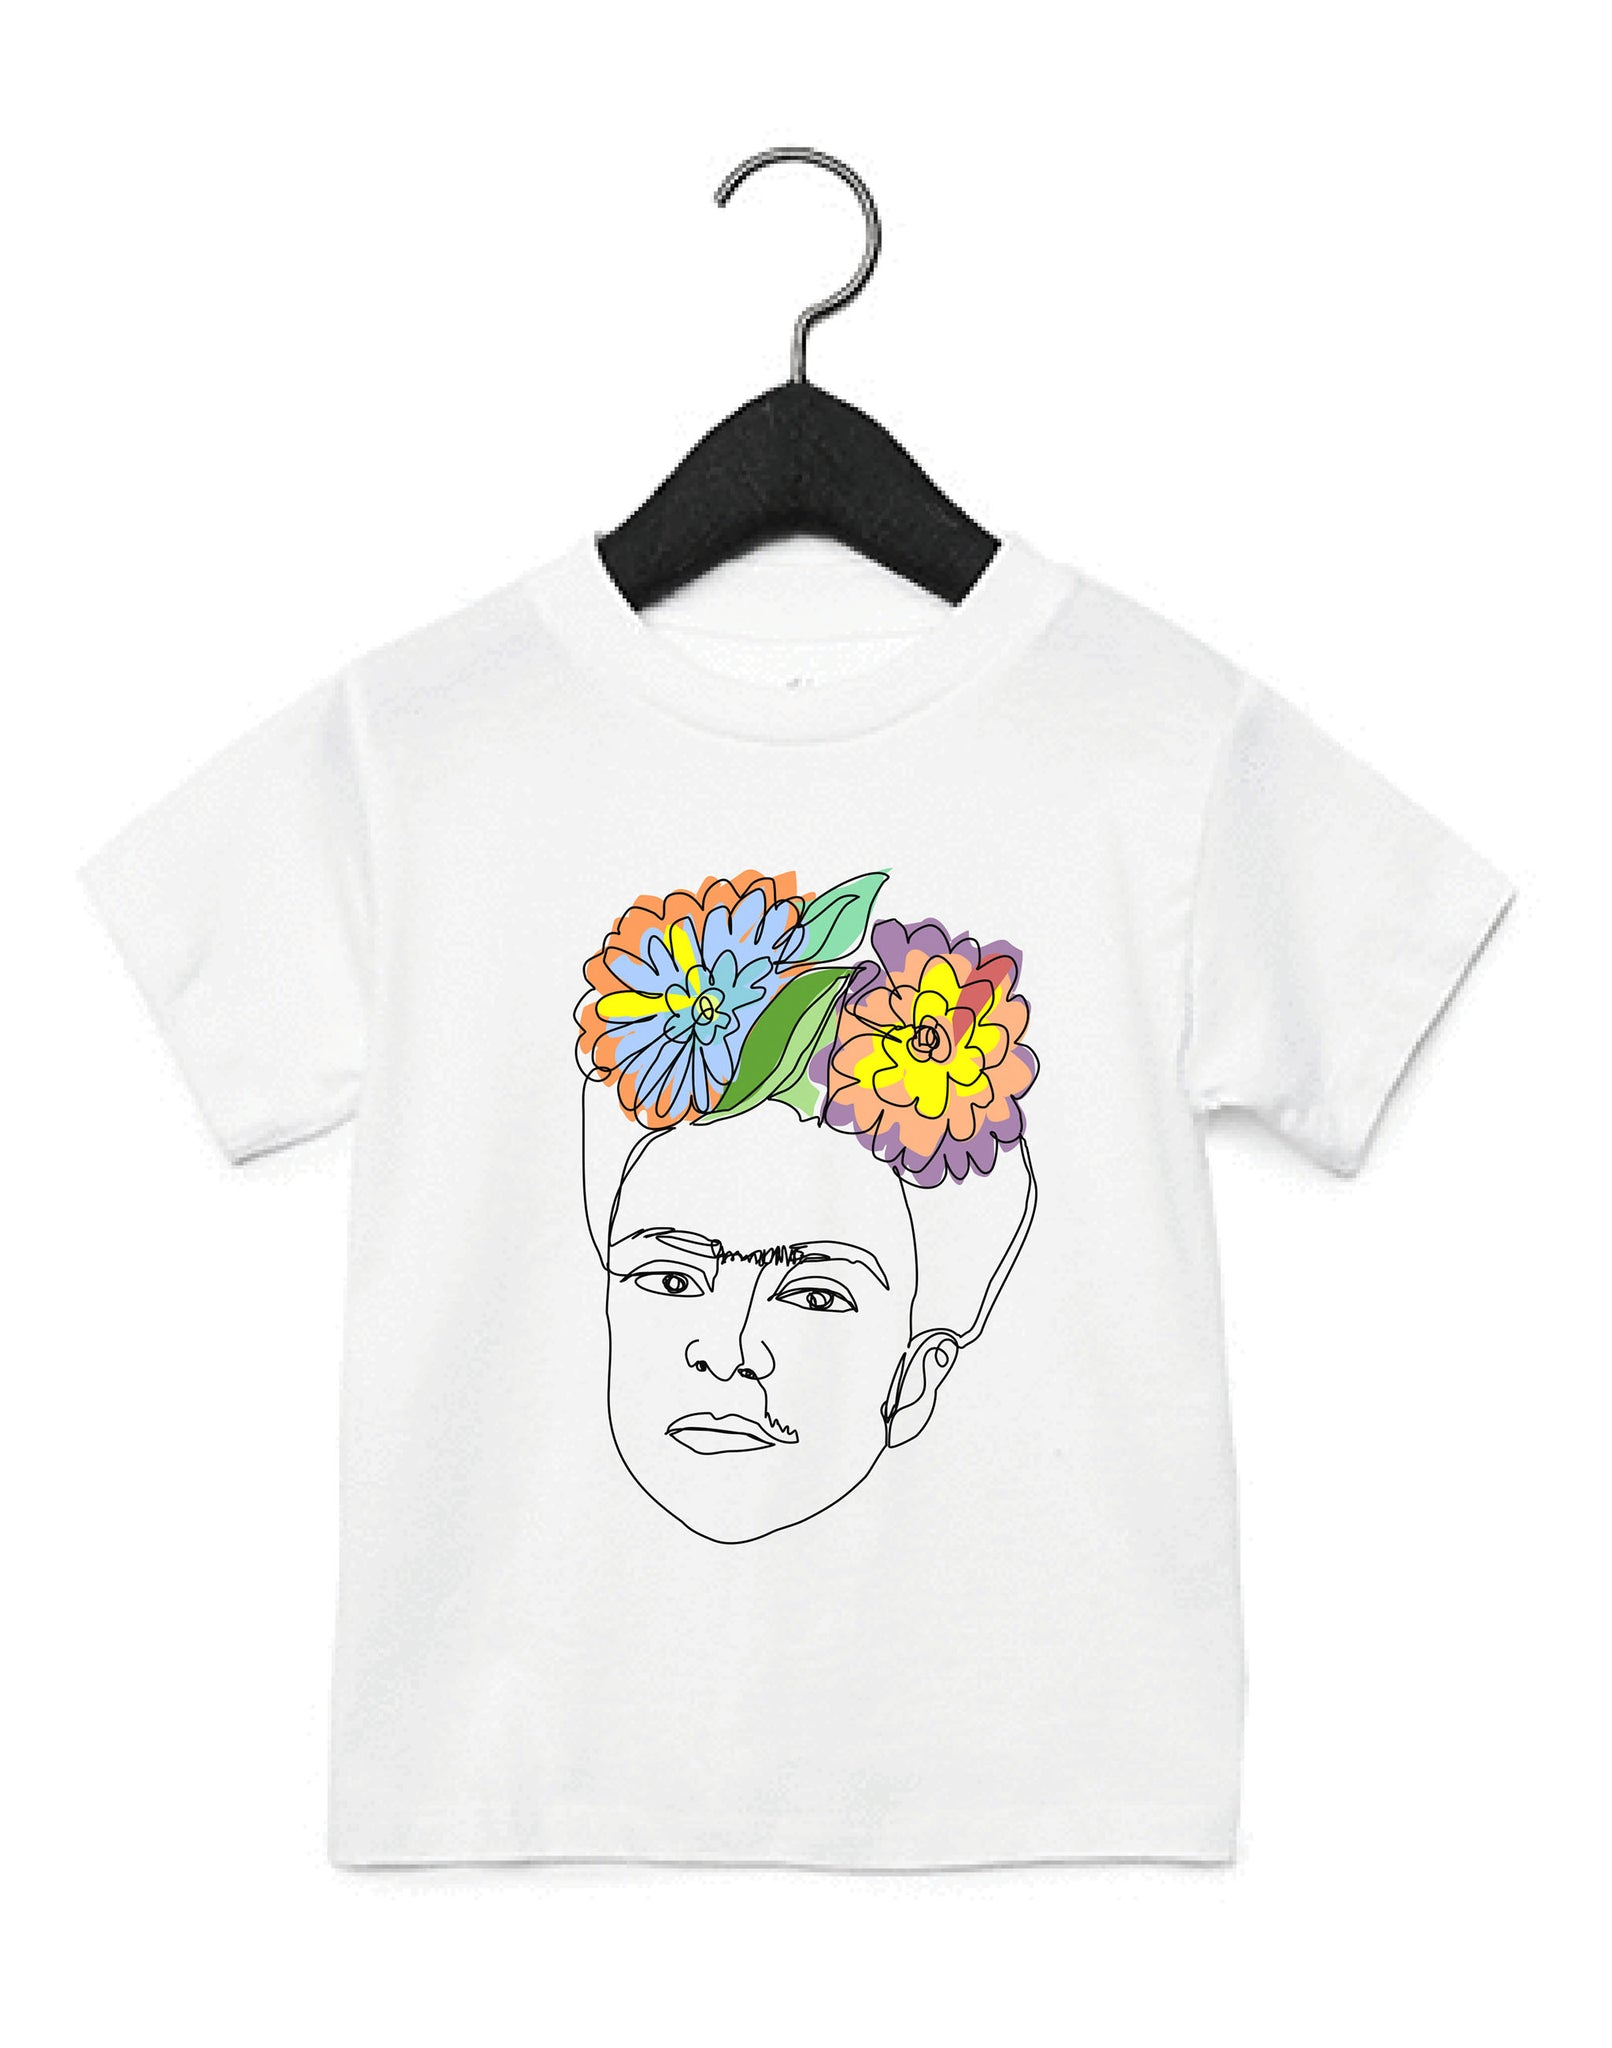 Ode to Frida Kahlo Kids T-Shirt